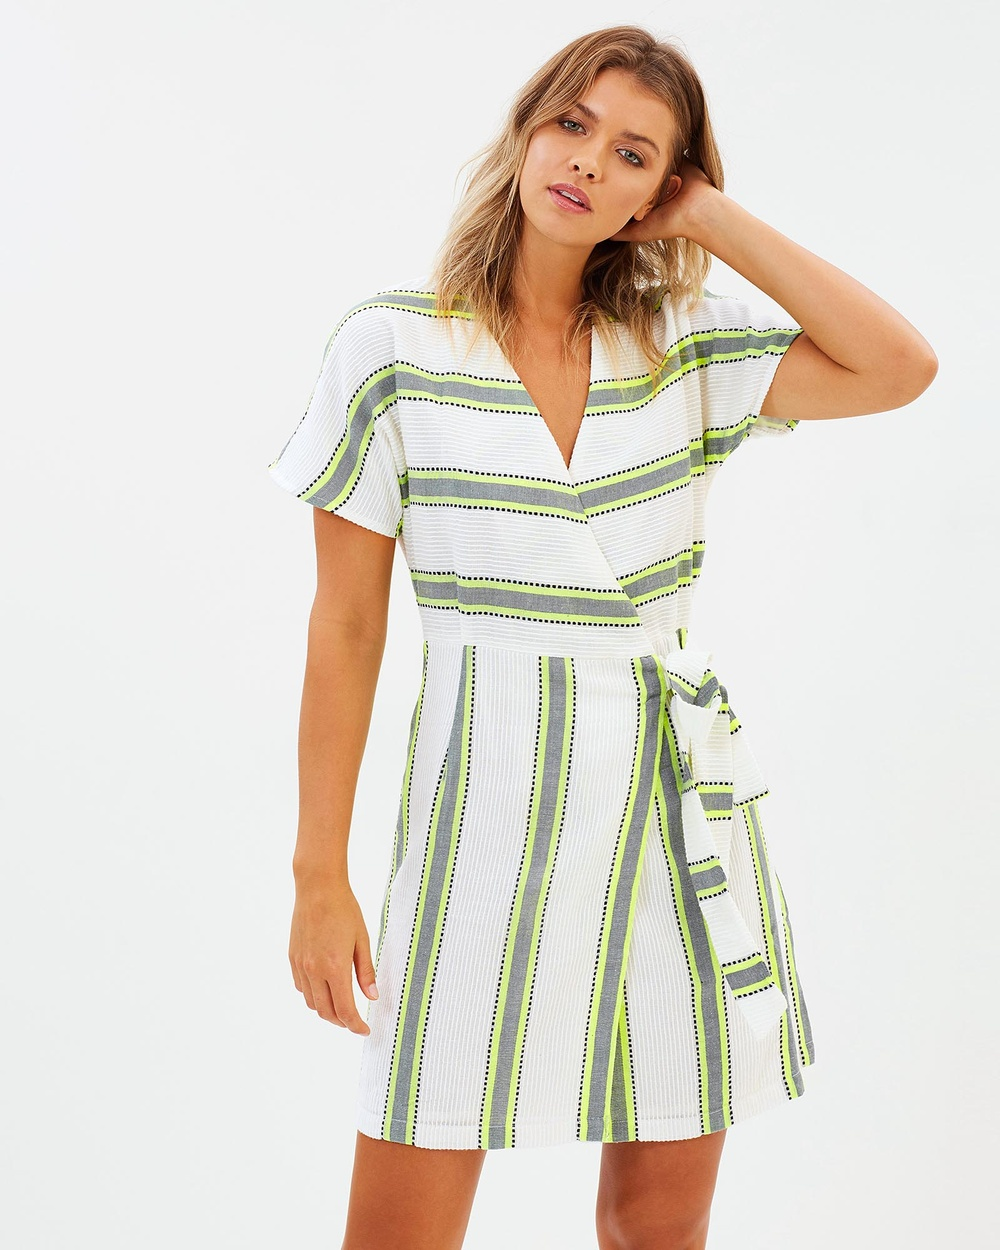 Solito Neon Dawn Wrap Dress Dresses Neon Neon Dawn Wrap Dress